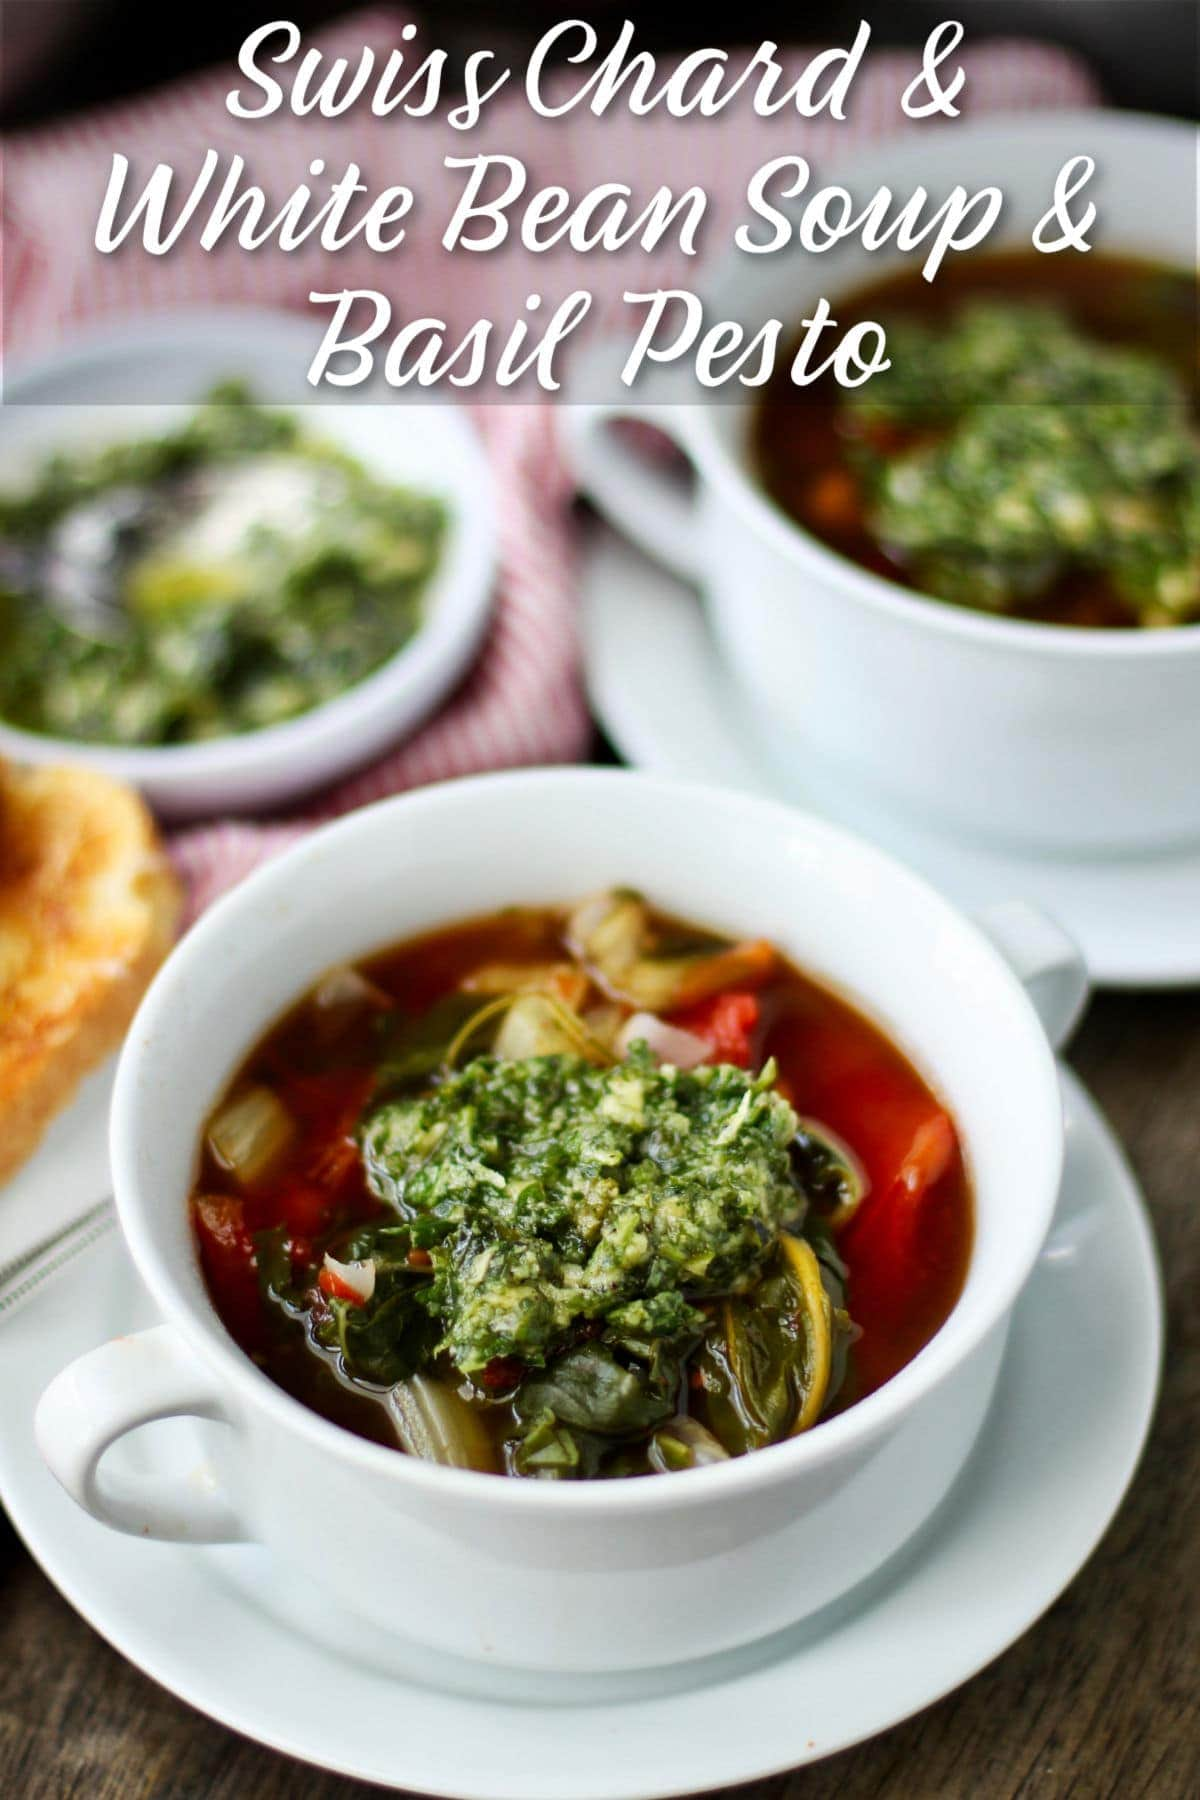 Swiss Chard and White Bean Soup with Basil Pesto in a bowl.